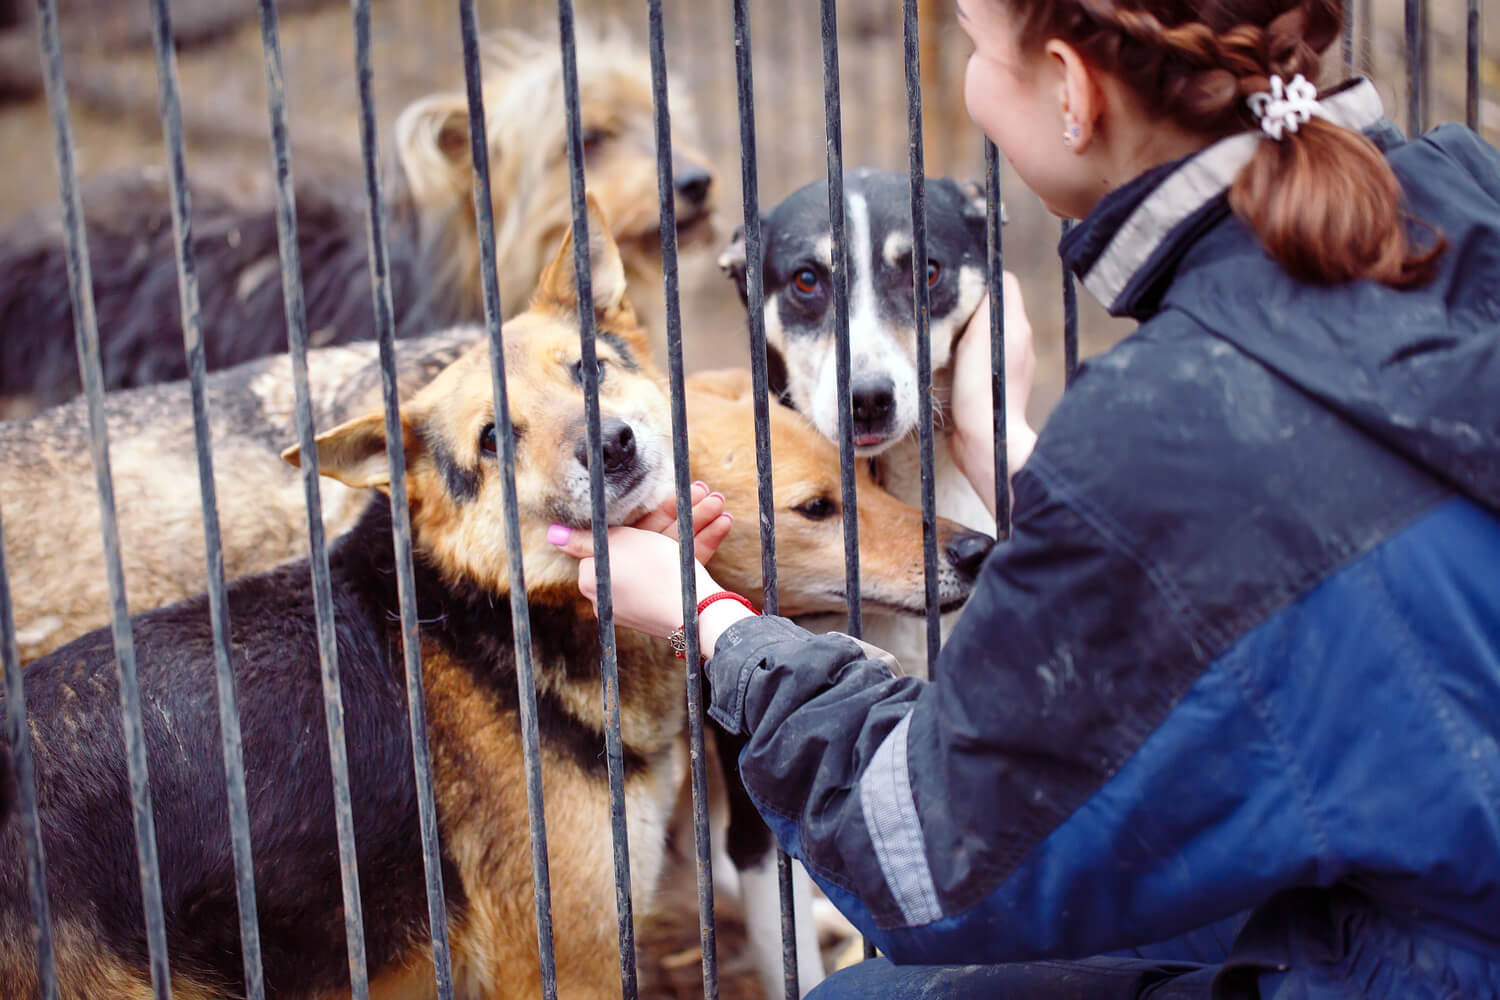 woman petting dogs - brokerages give back this winter